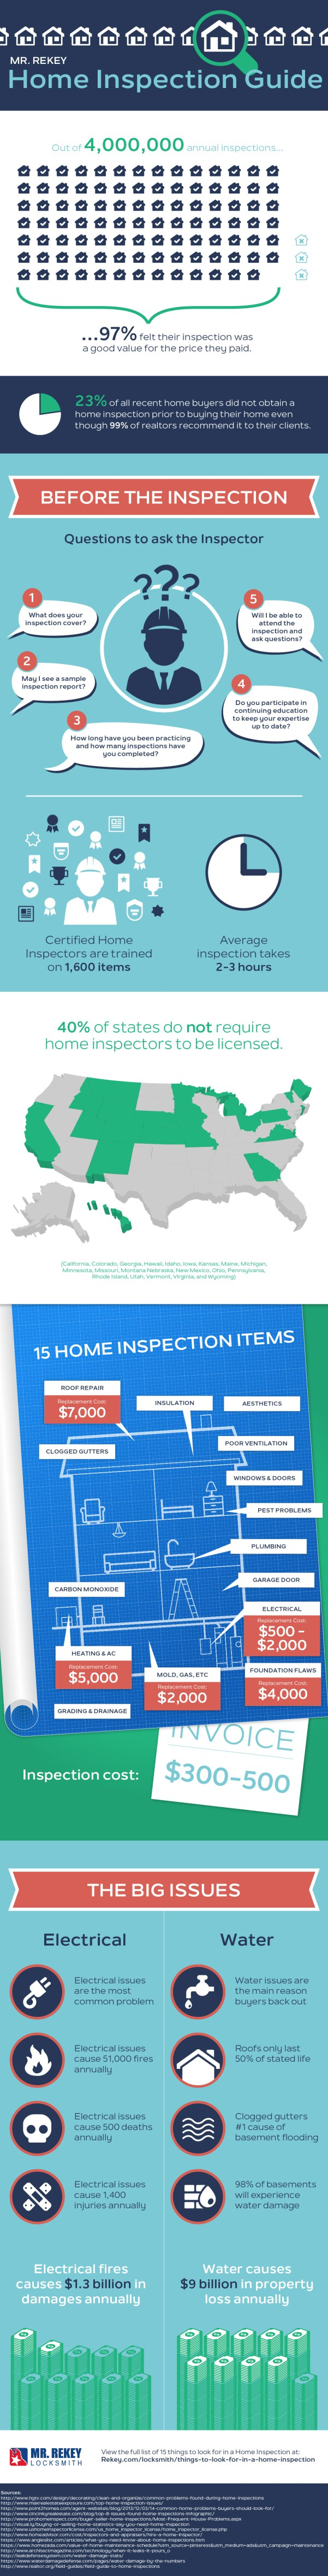 Home Inspection Guide: Learn the 15 things to look for in a home inspection on our blog!